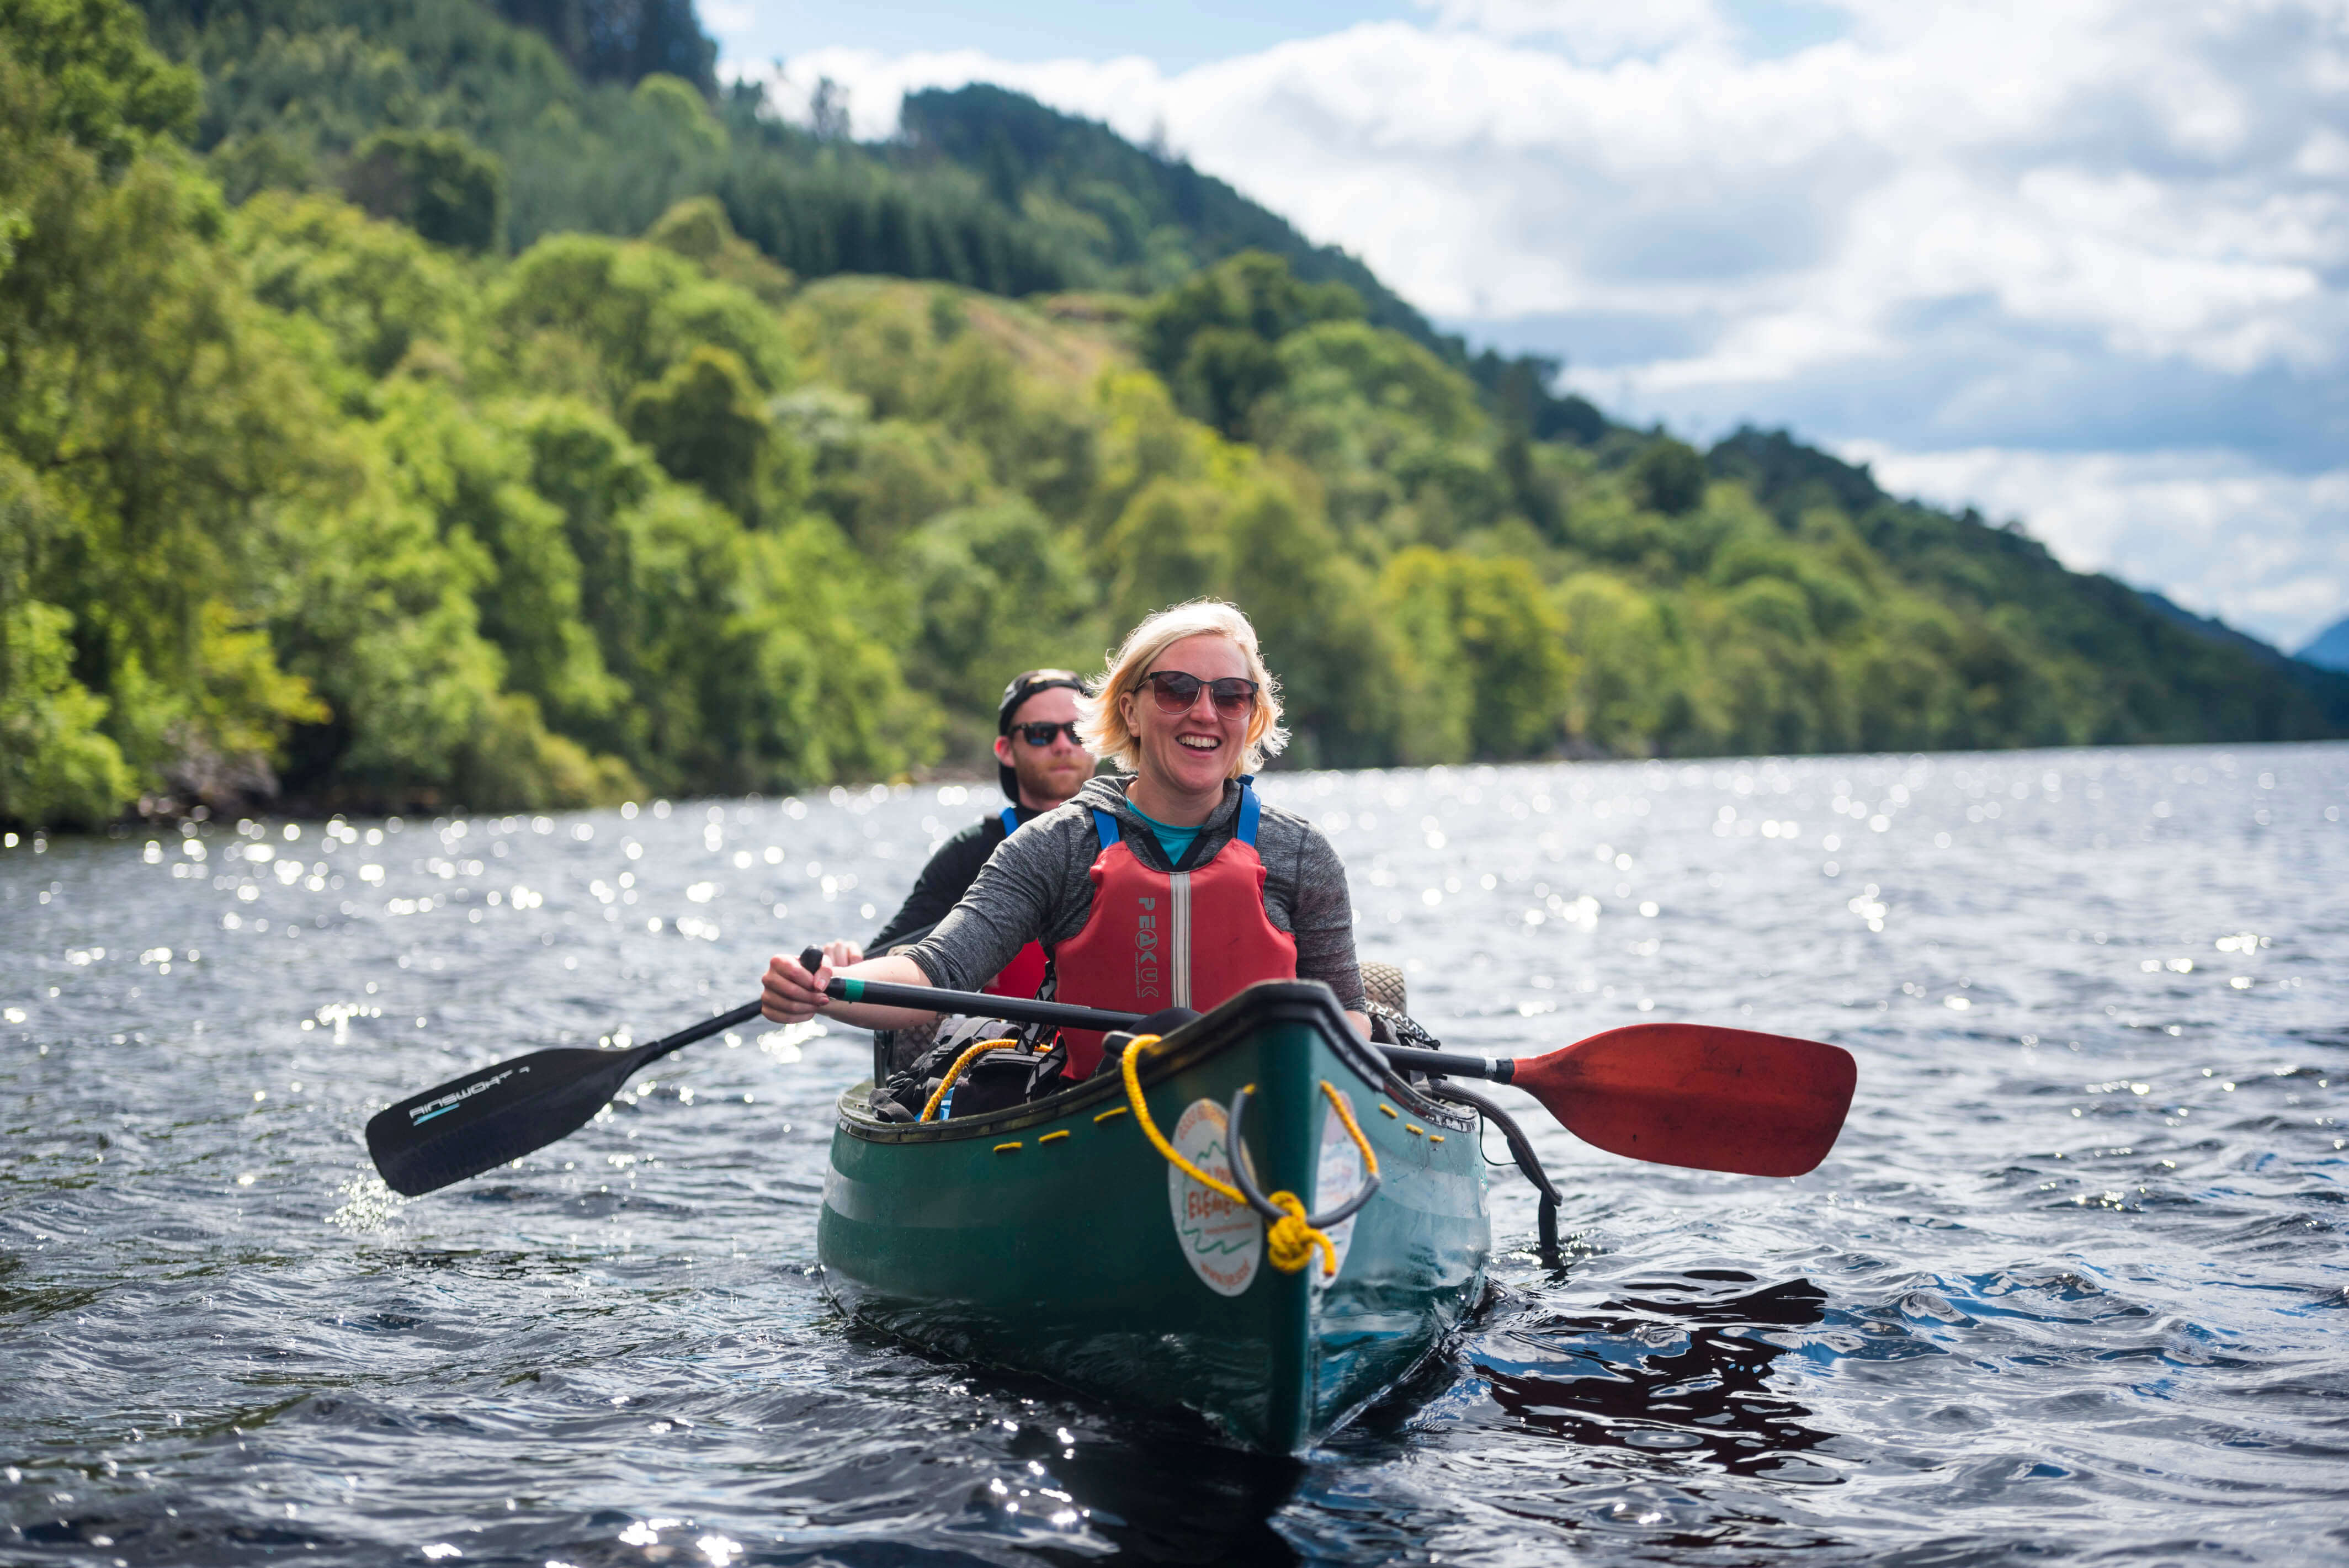 Caroline out canoeing in Scotland